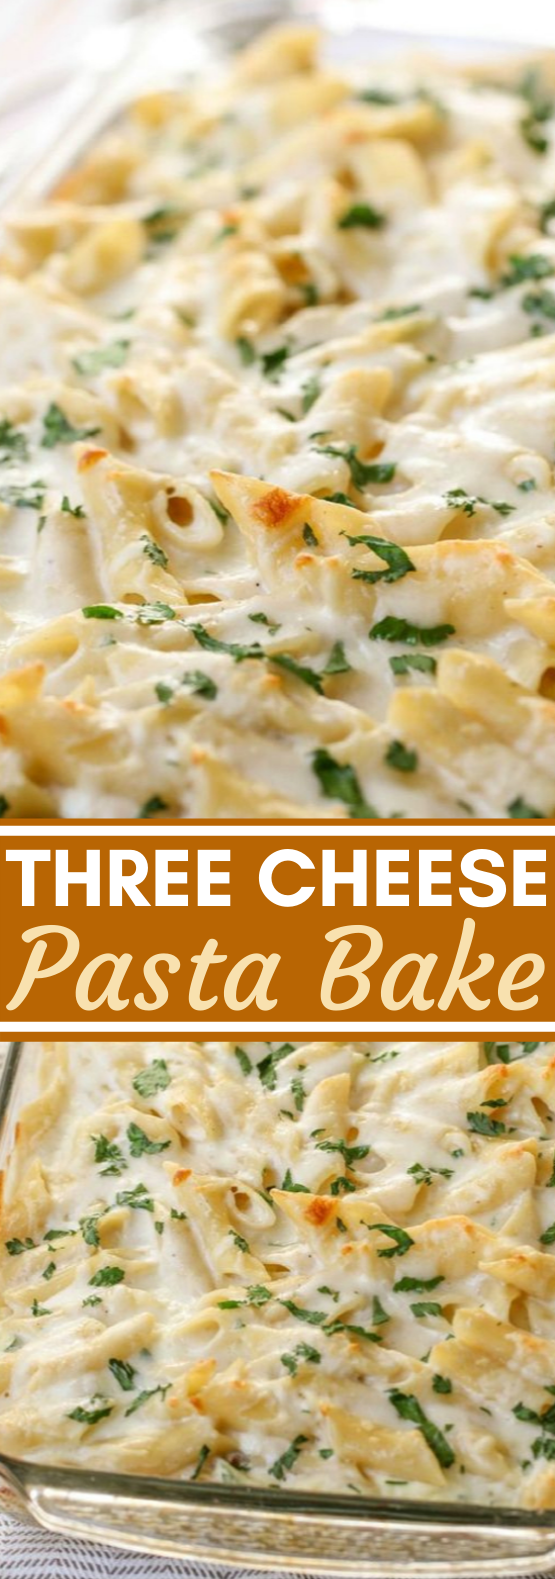 Three Cheese Pasta Bake #dinner #recipes #weeknight #pasta #cheese